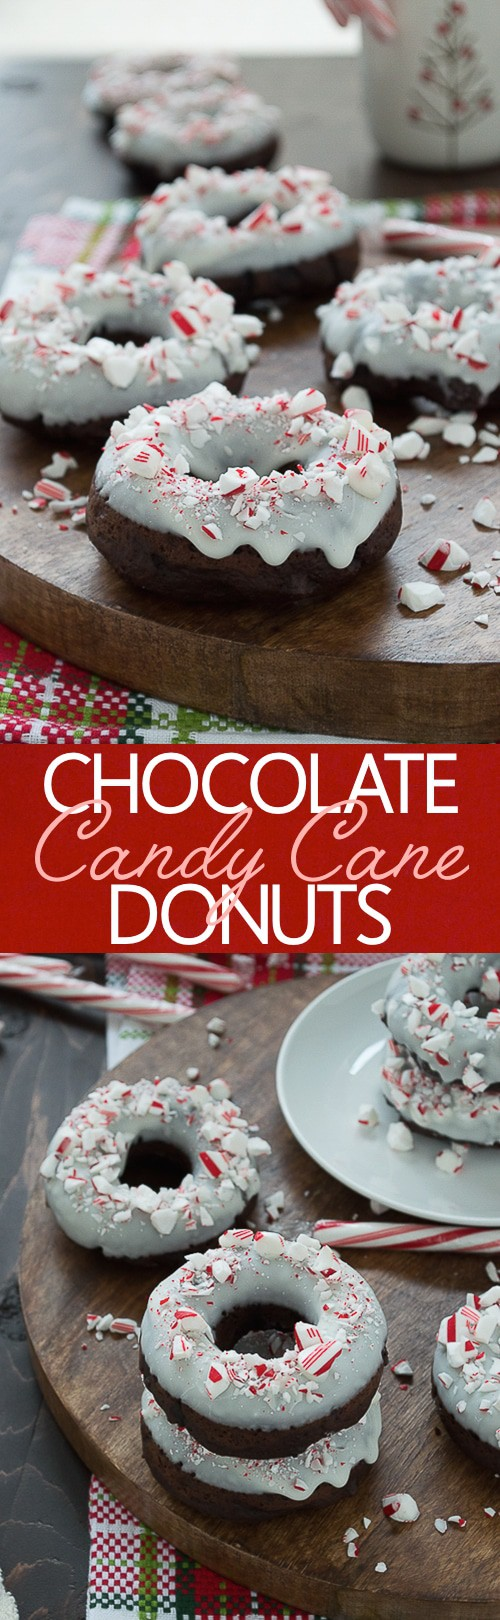 Baked chocolate donuts infused with peppermint flavor, topped with white chocolate and crushed candy canes.